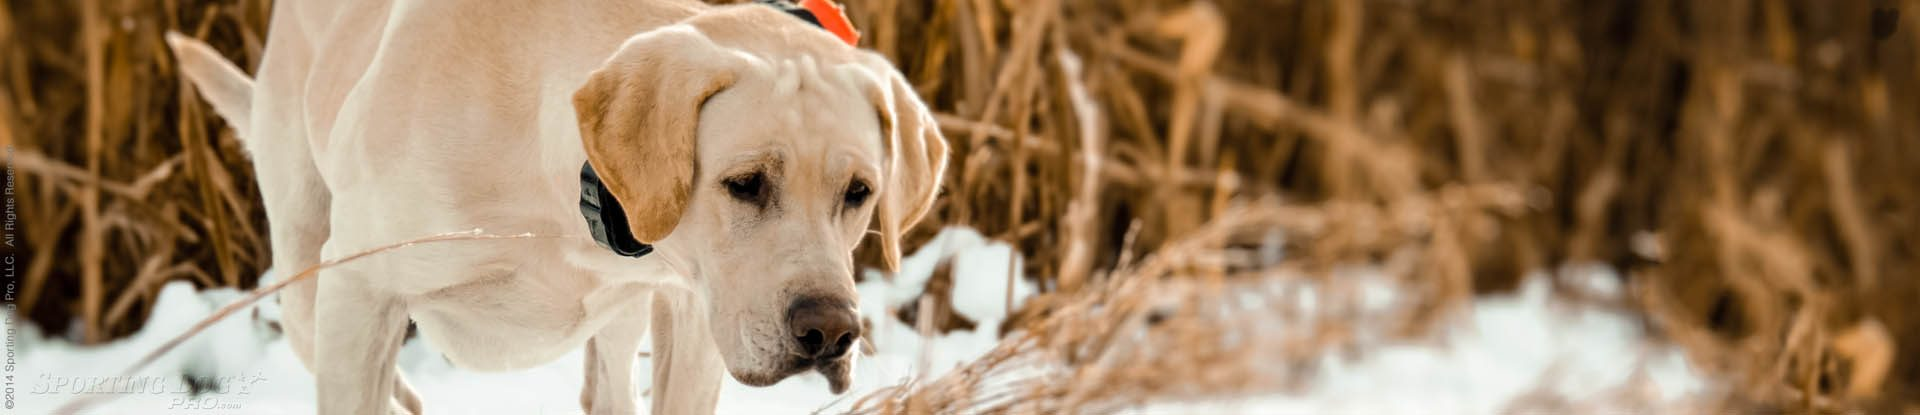 hunting dog wearing a dog training collar